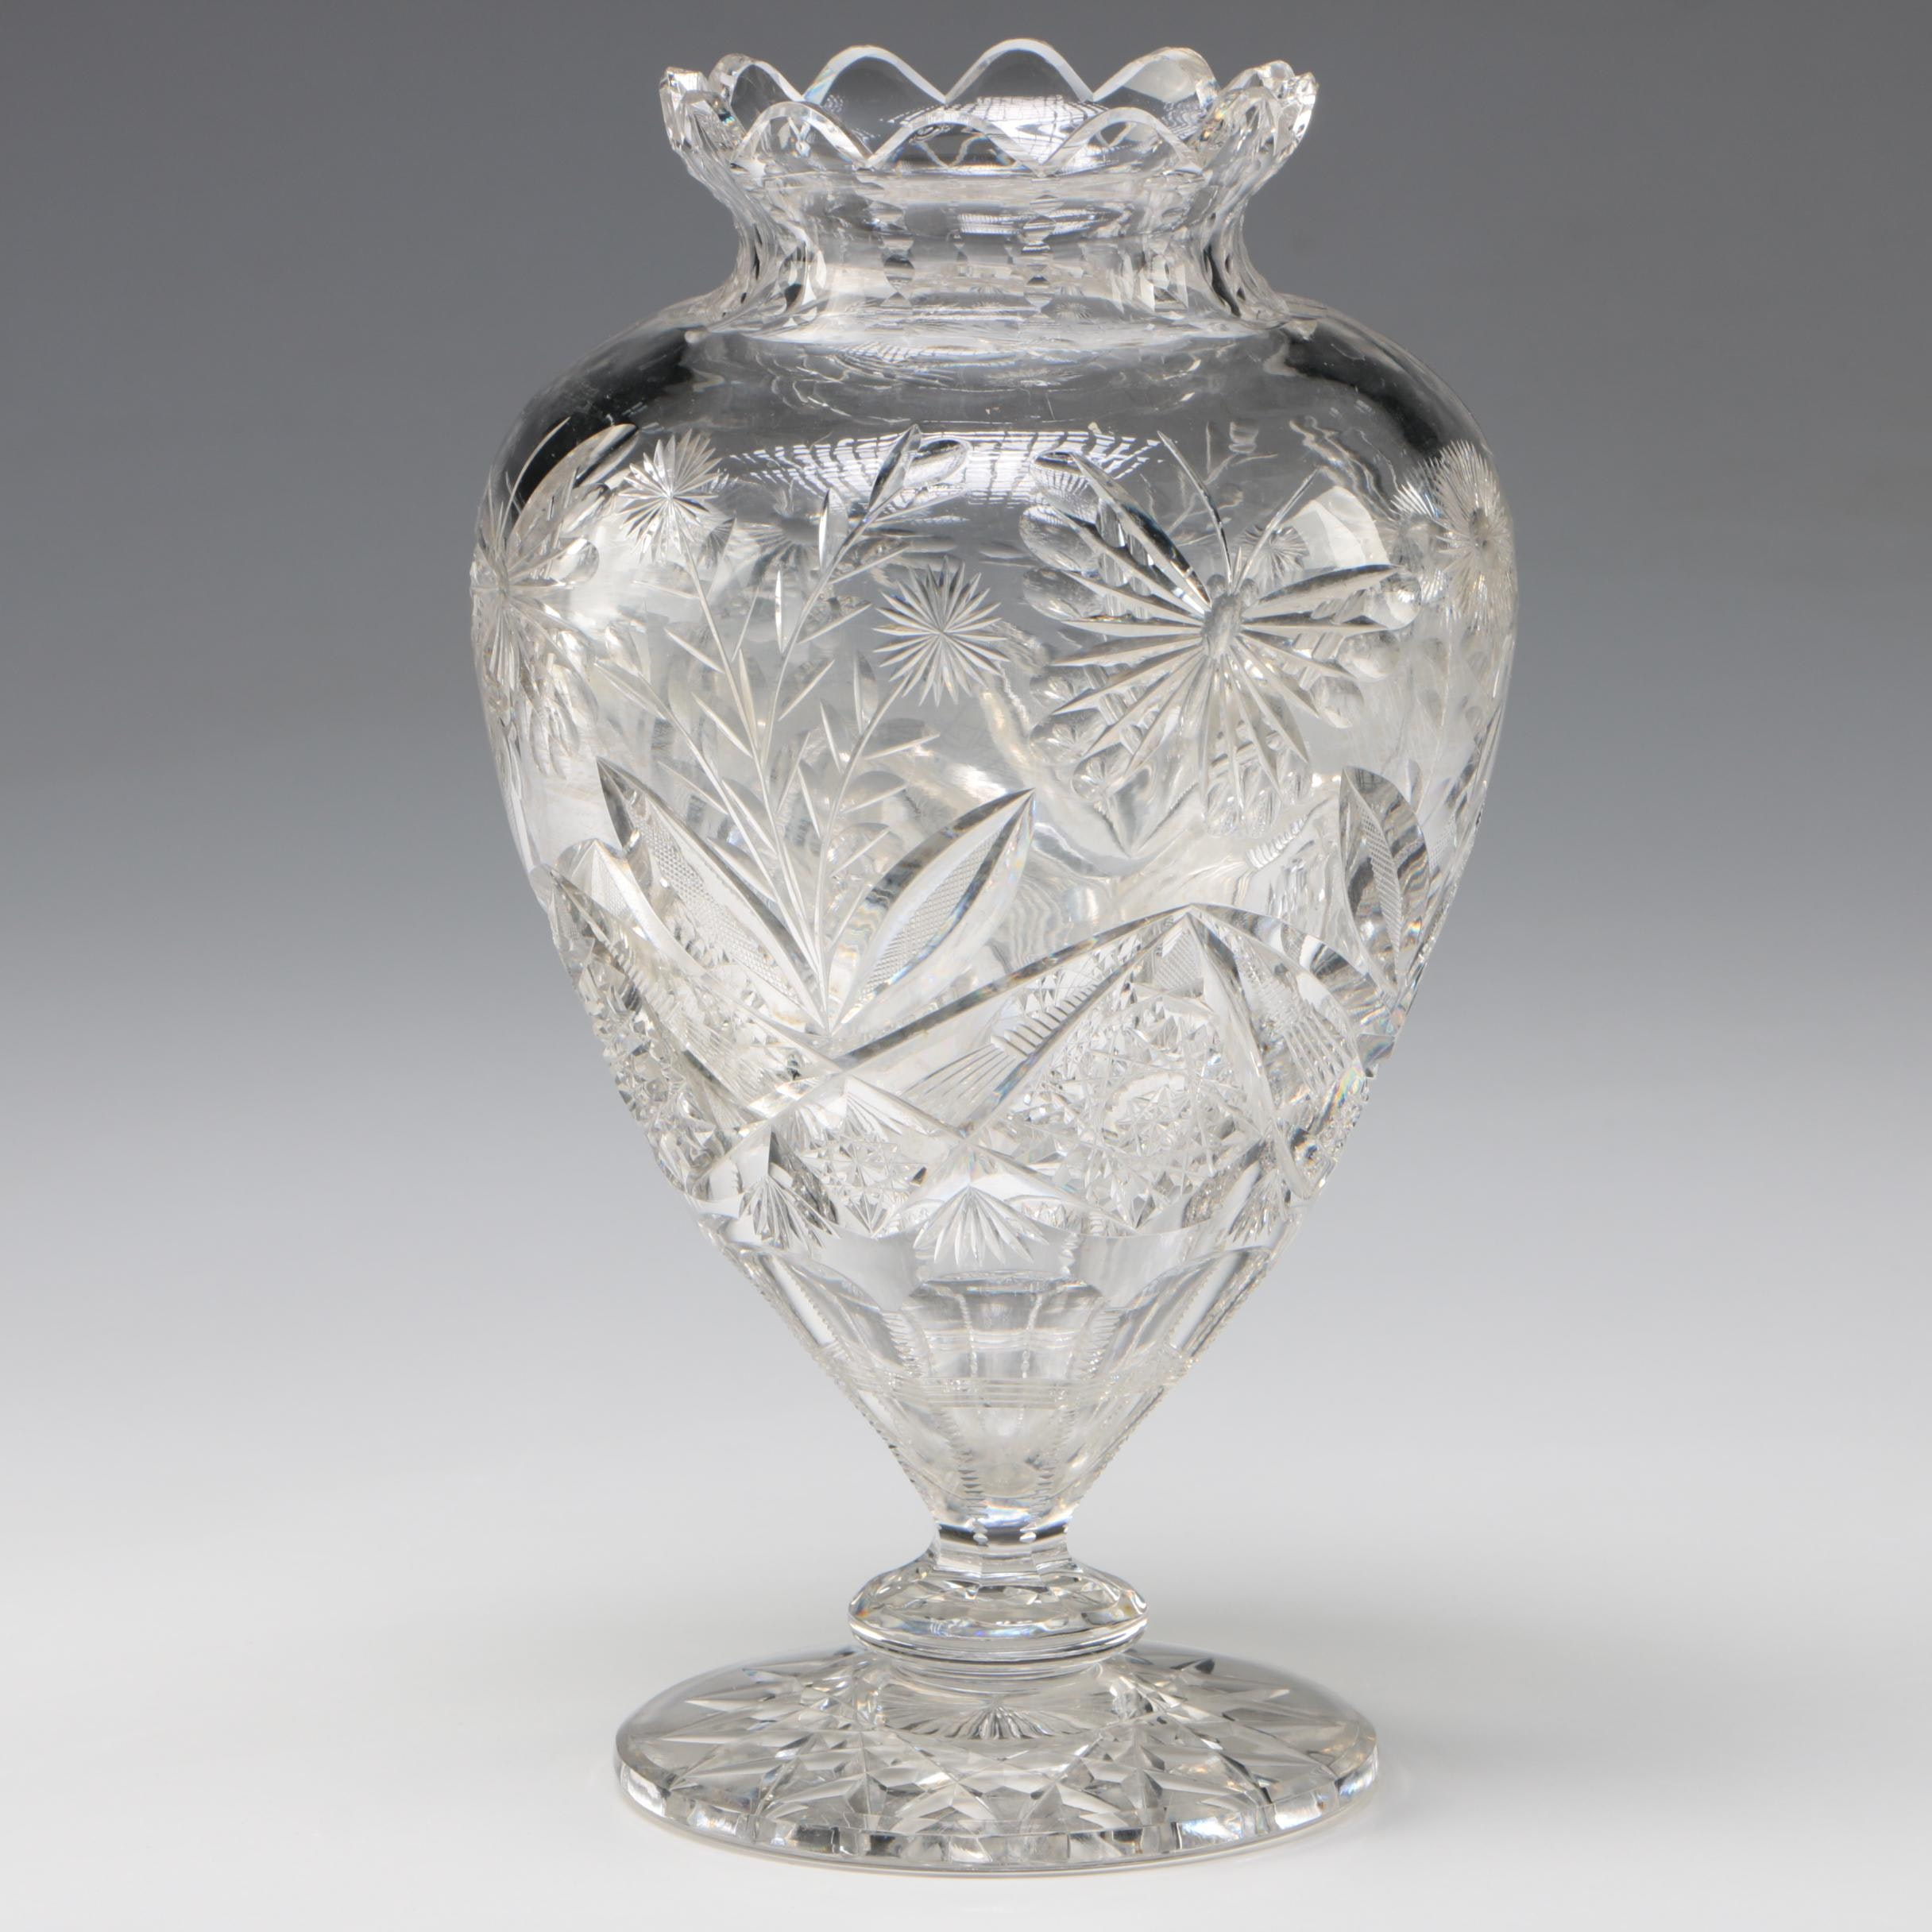 American Brilliant Cut Glass, Late 19th/Early 20th Century